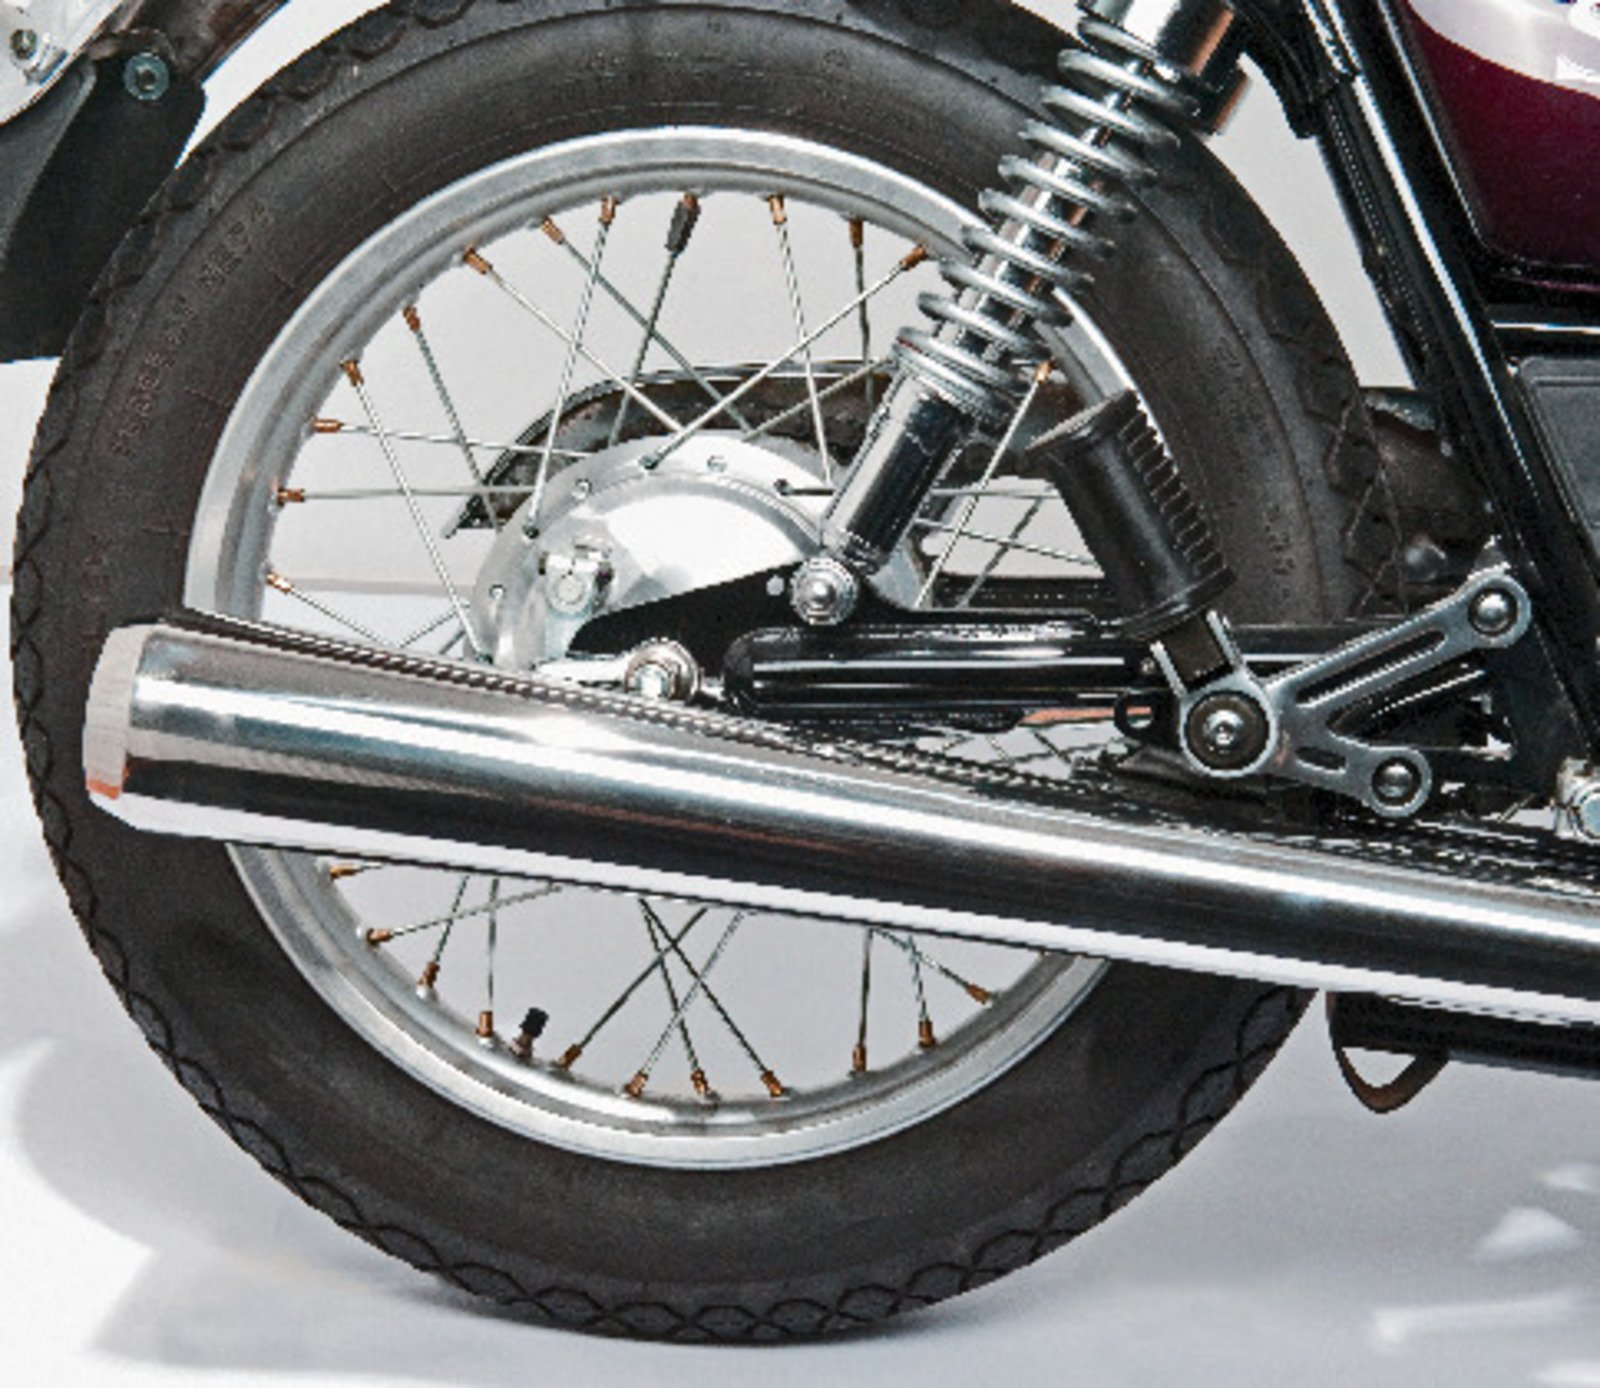 Yamaha SR500 Stainless Steel Silencer (shape similar to OEM without expansion tank) 29206